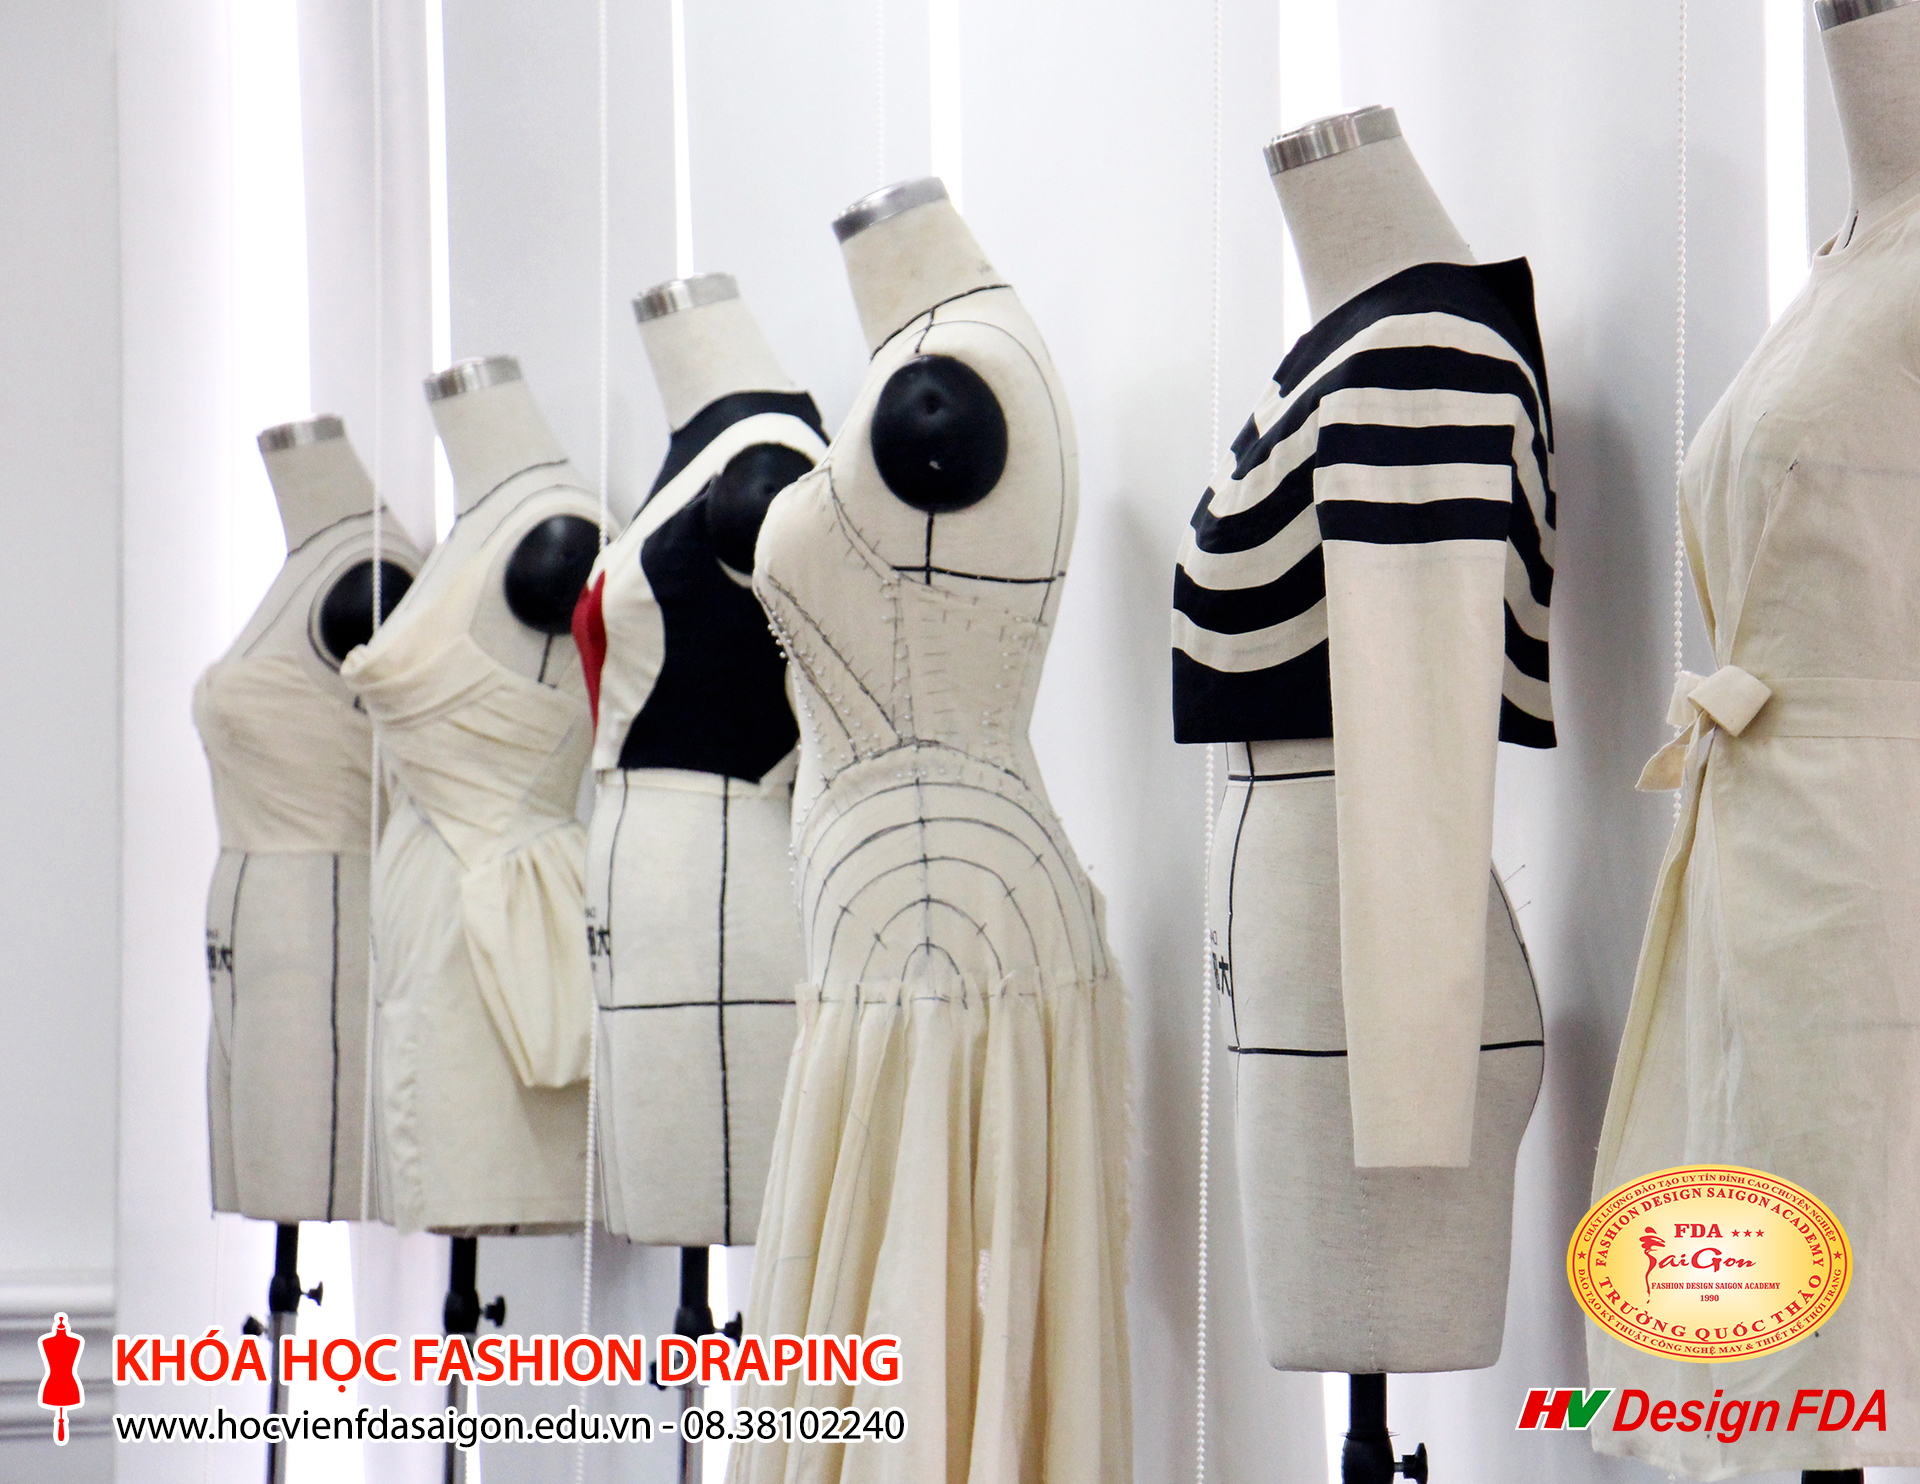 The art of fashion draping download 27